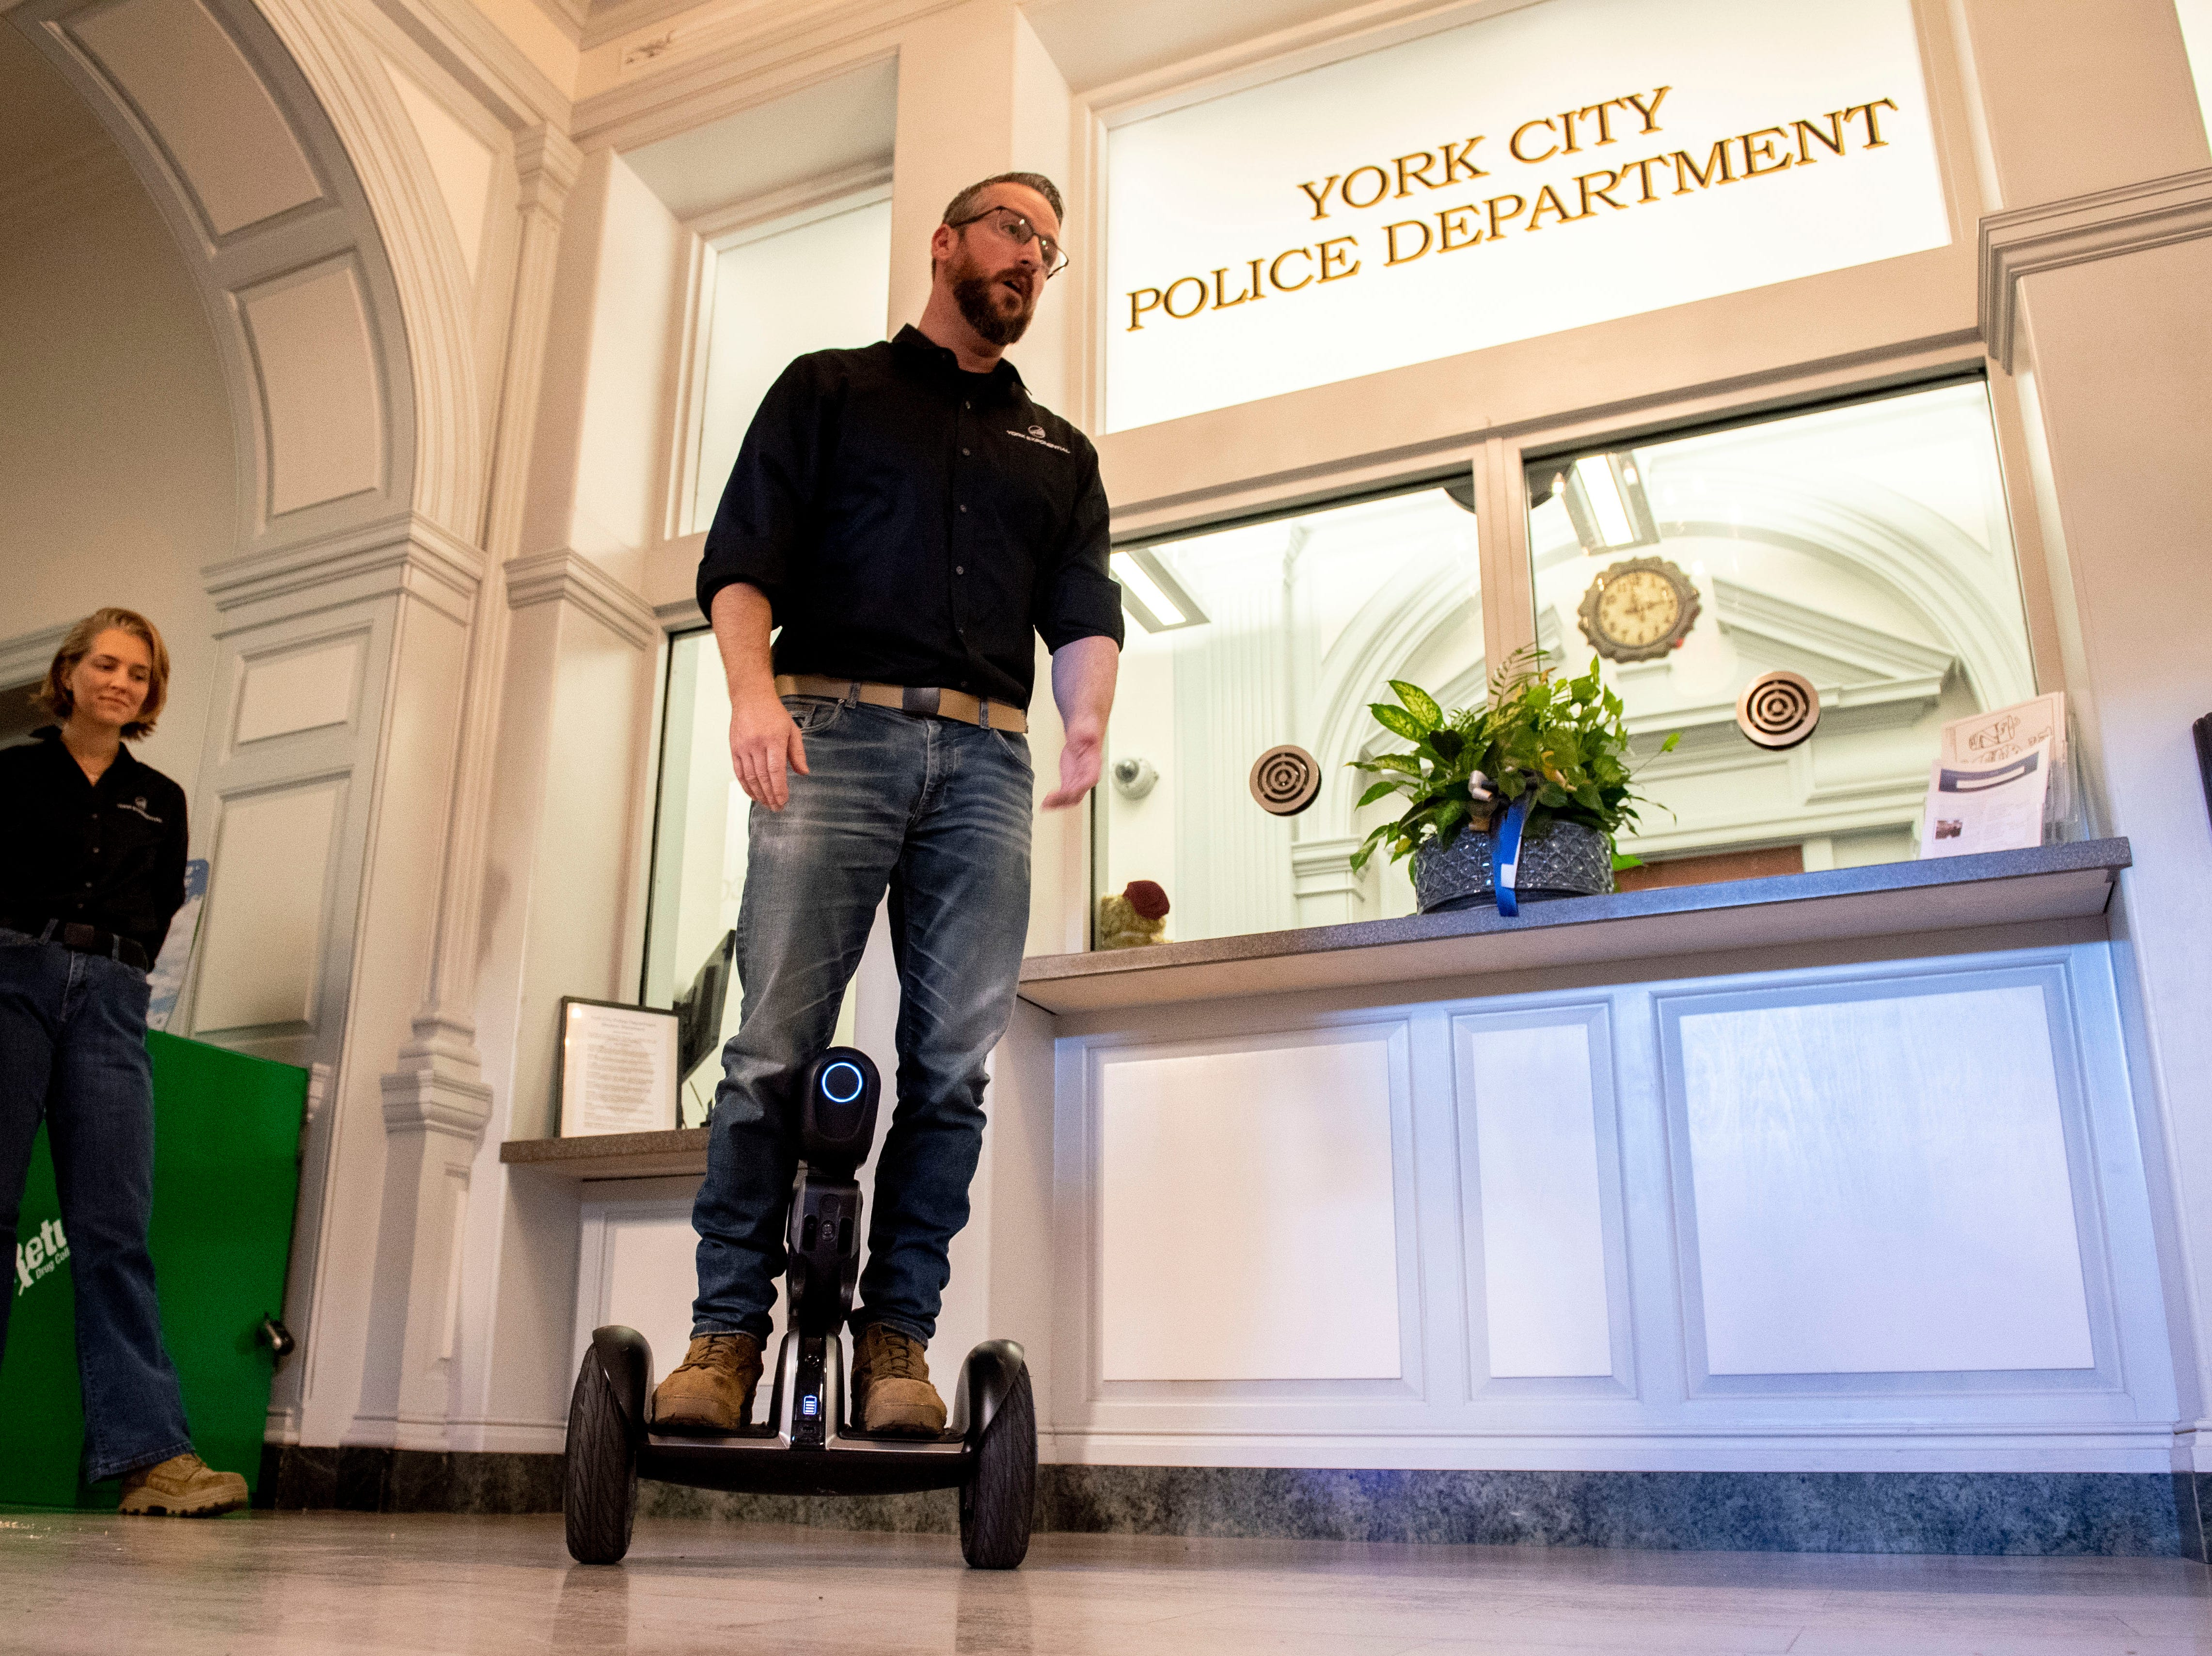 John McElligott, the CEO of York Exponential, rides the 'Loomo' during a demonstration of the robot at the York City Police Department on Thursday, Nov. 8, 2018.